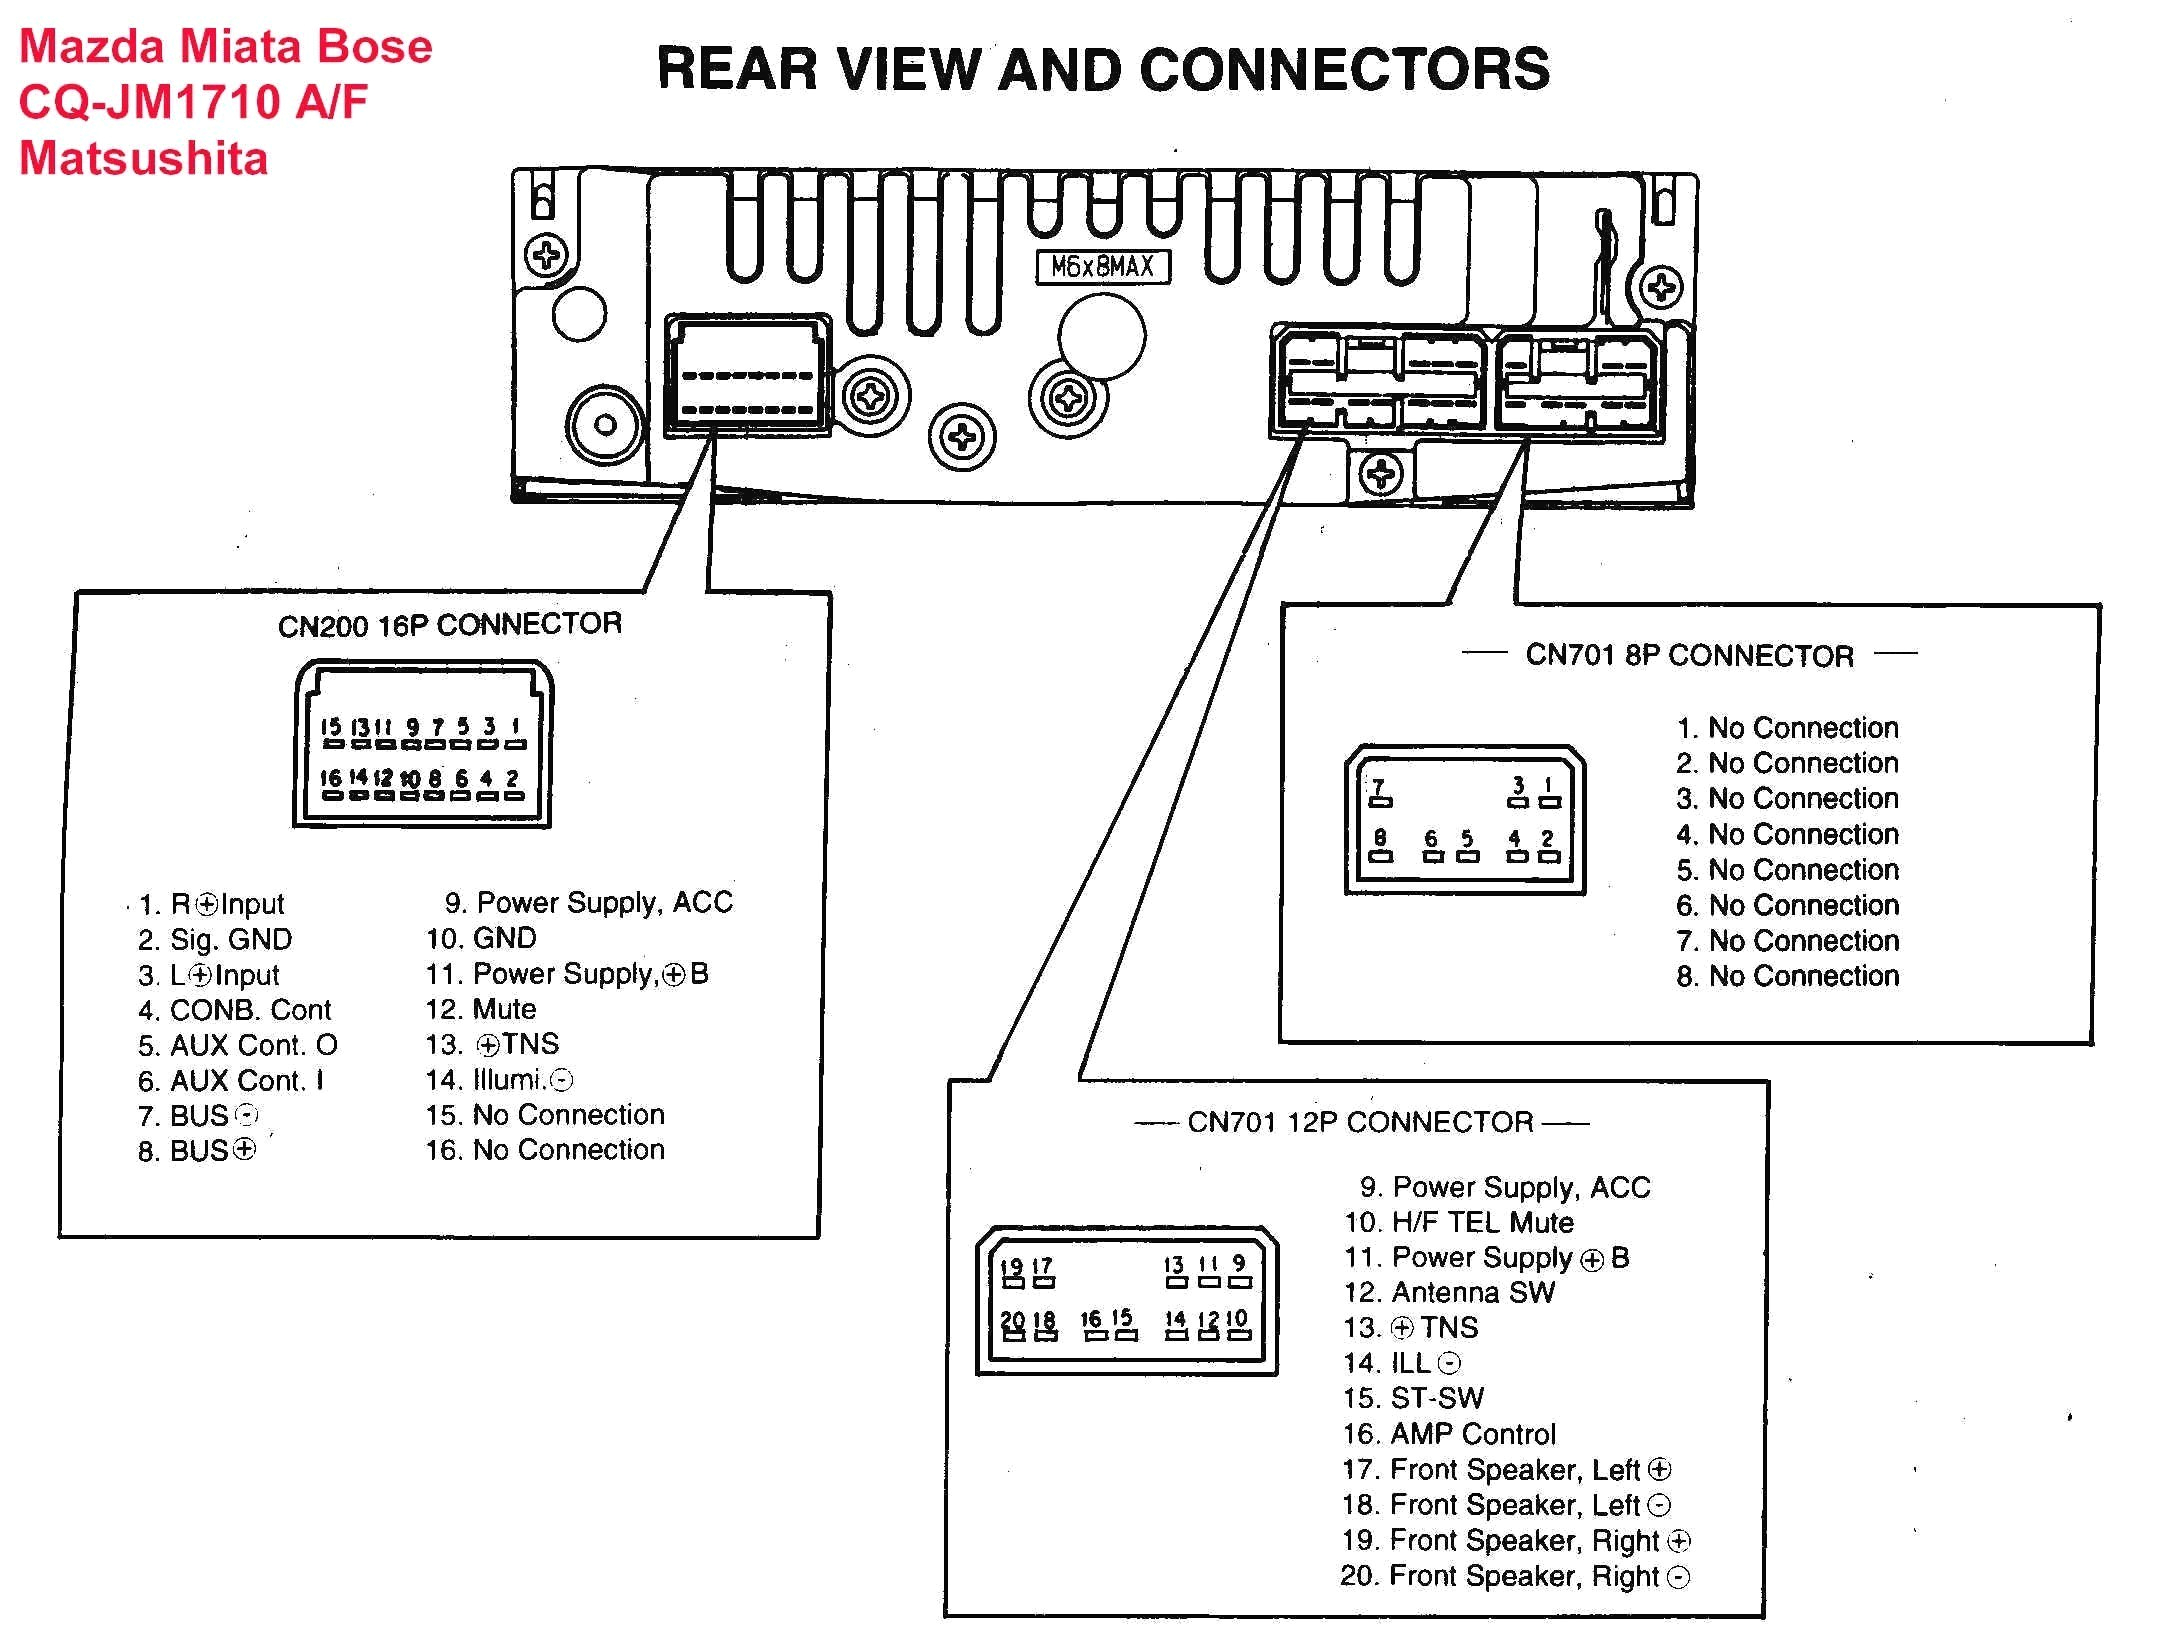 wiring diagram sony car stereo only schematic wiring diagram diagram powersupplycircuit benqlaptopbatterychargercircuithtml wiring diagram sony car